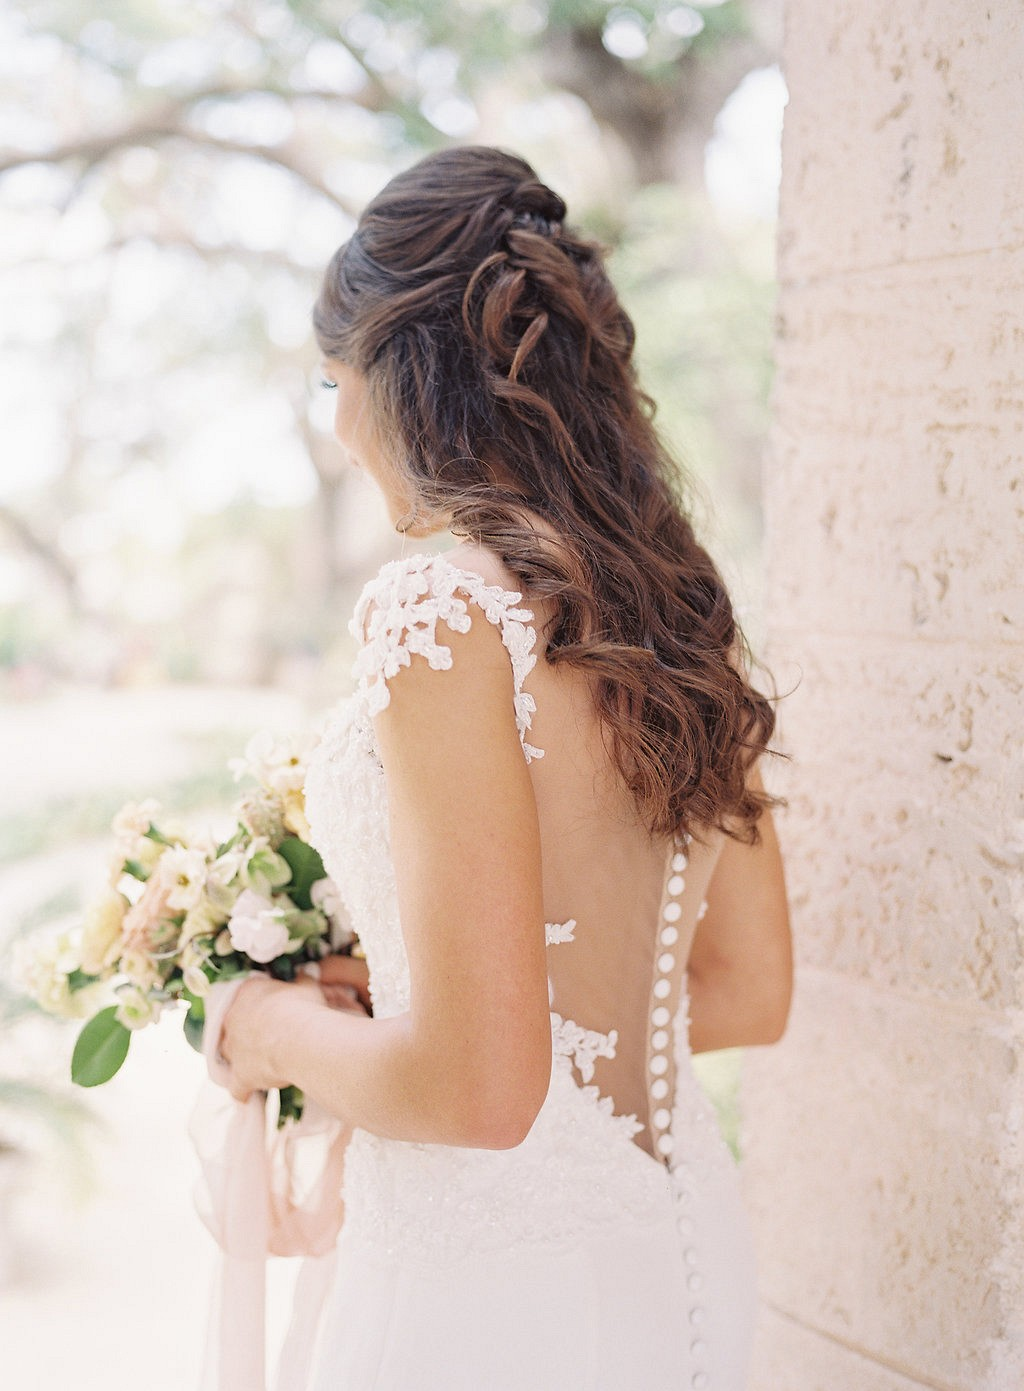 Ashton's Lovely Bridal Session at Vizcaya Museum and Gardens